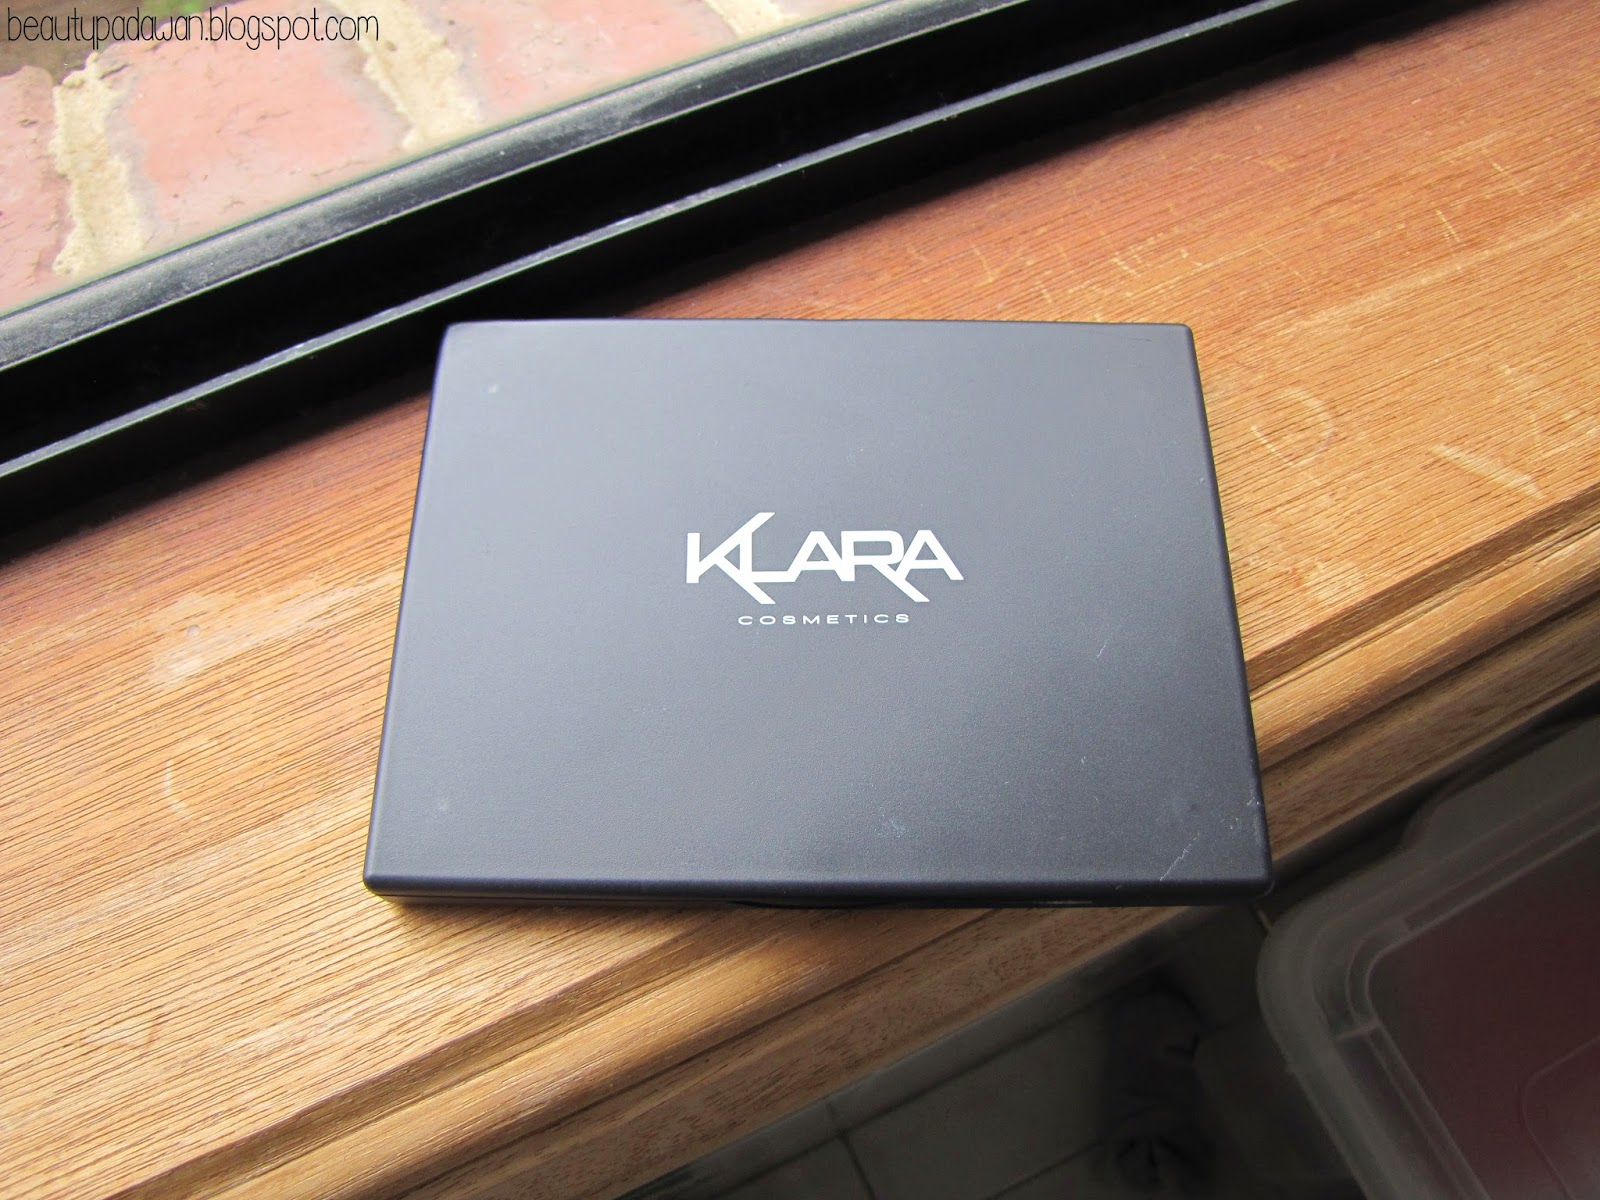 Klara Cosmetics eye shadow palette